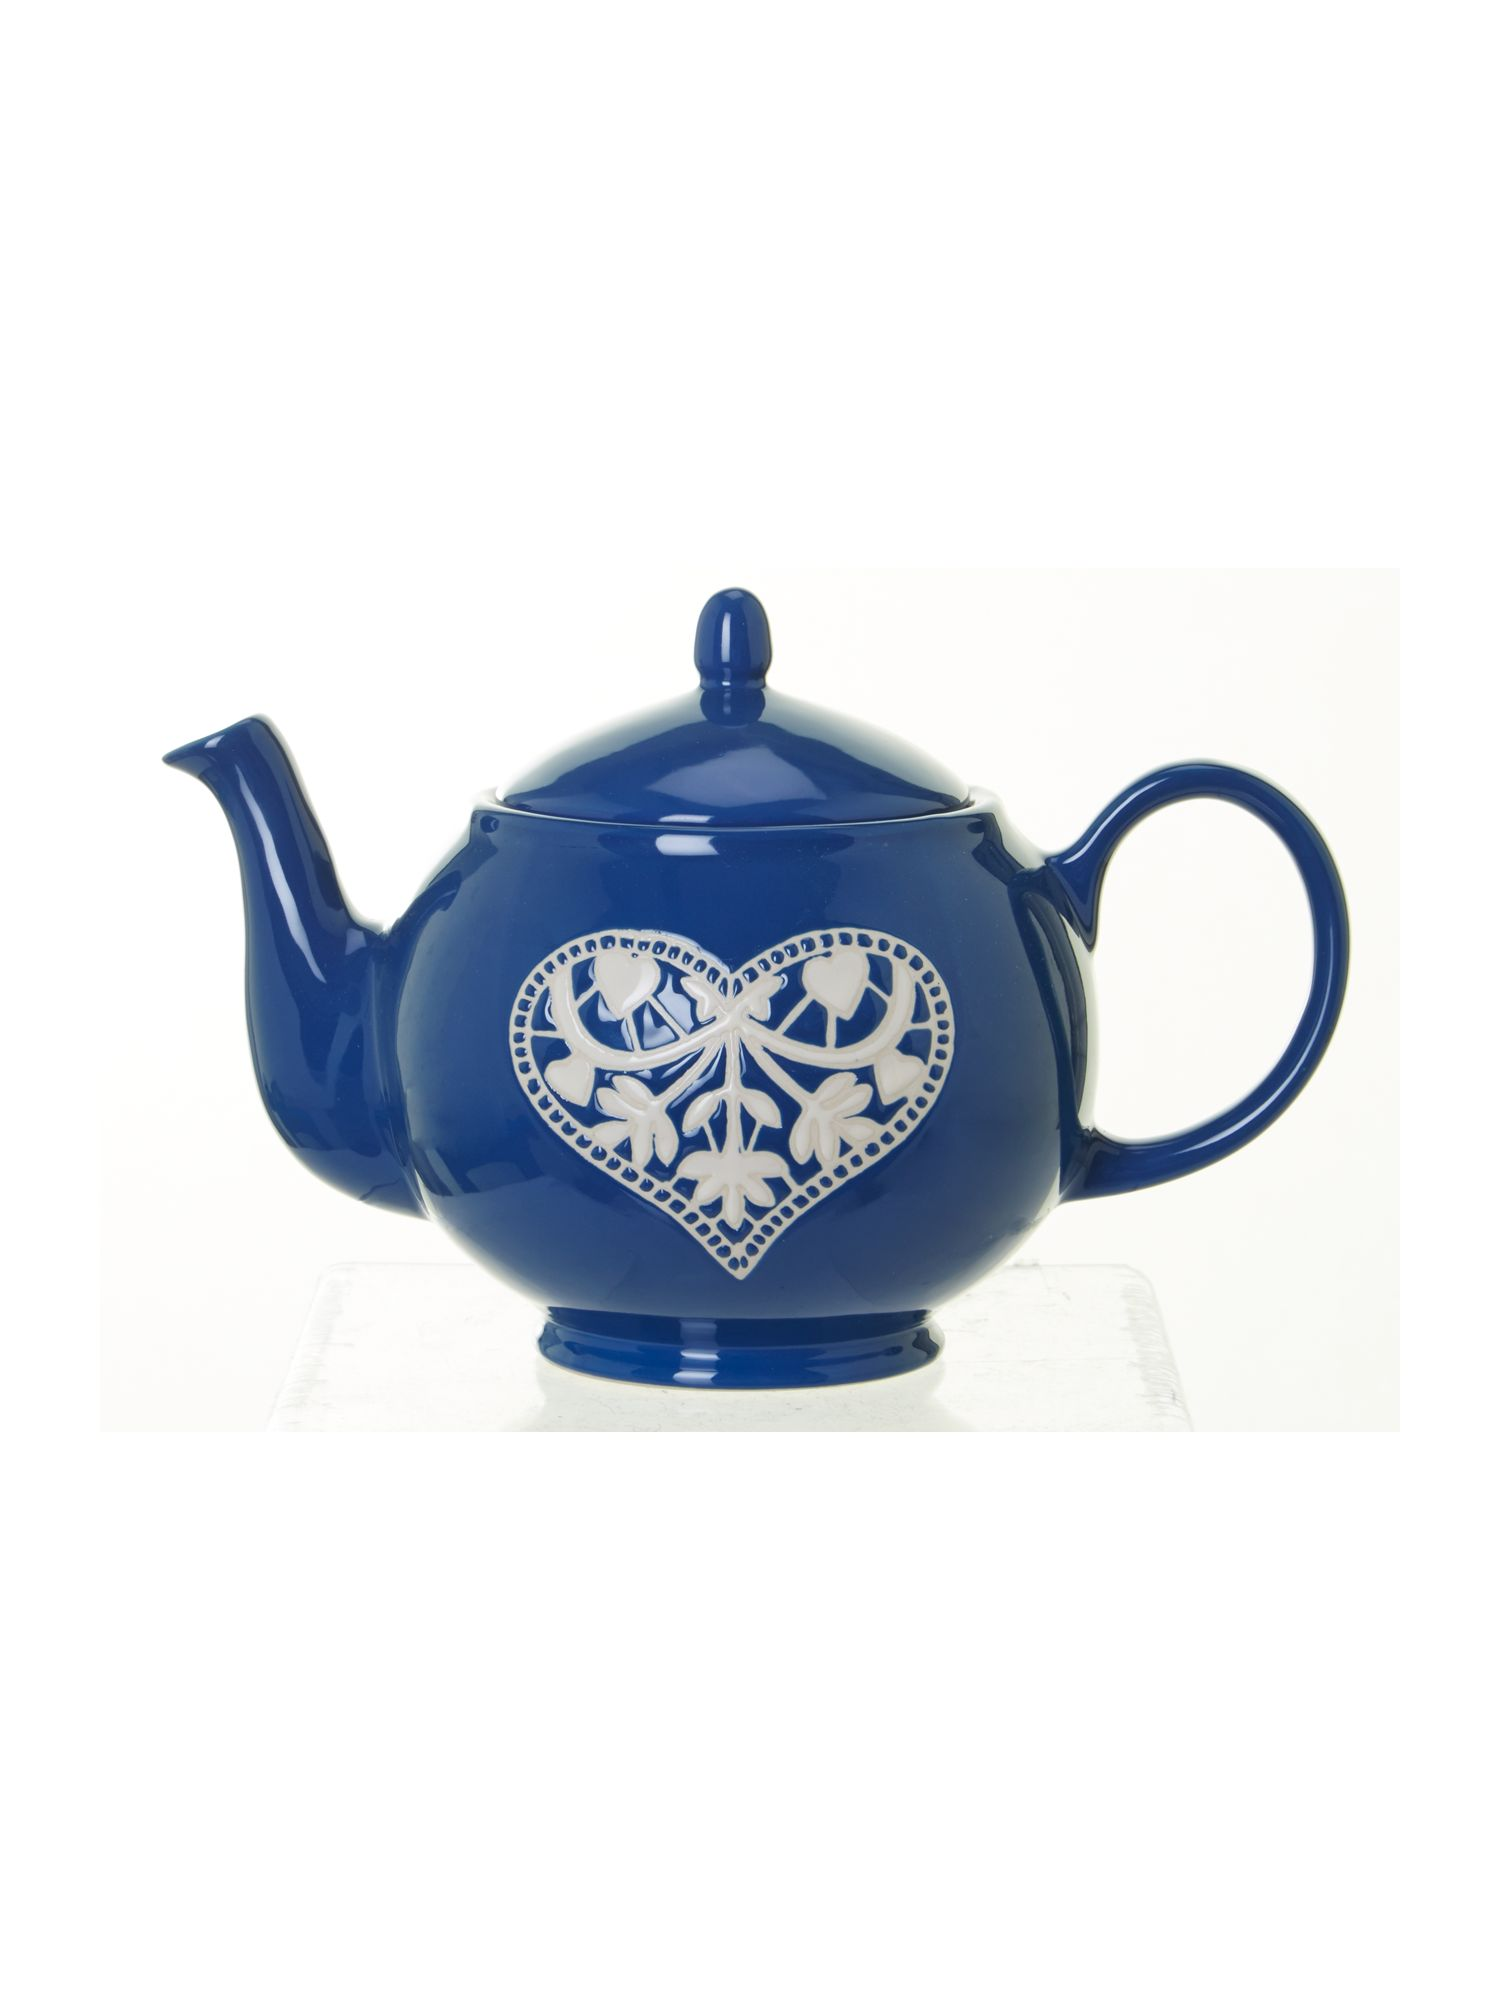 Jan constantine tea pot